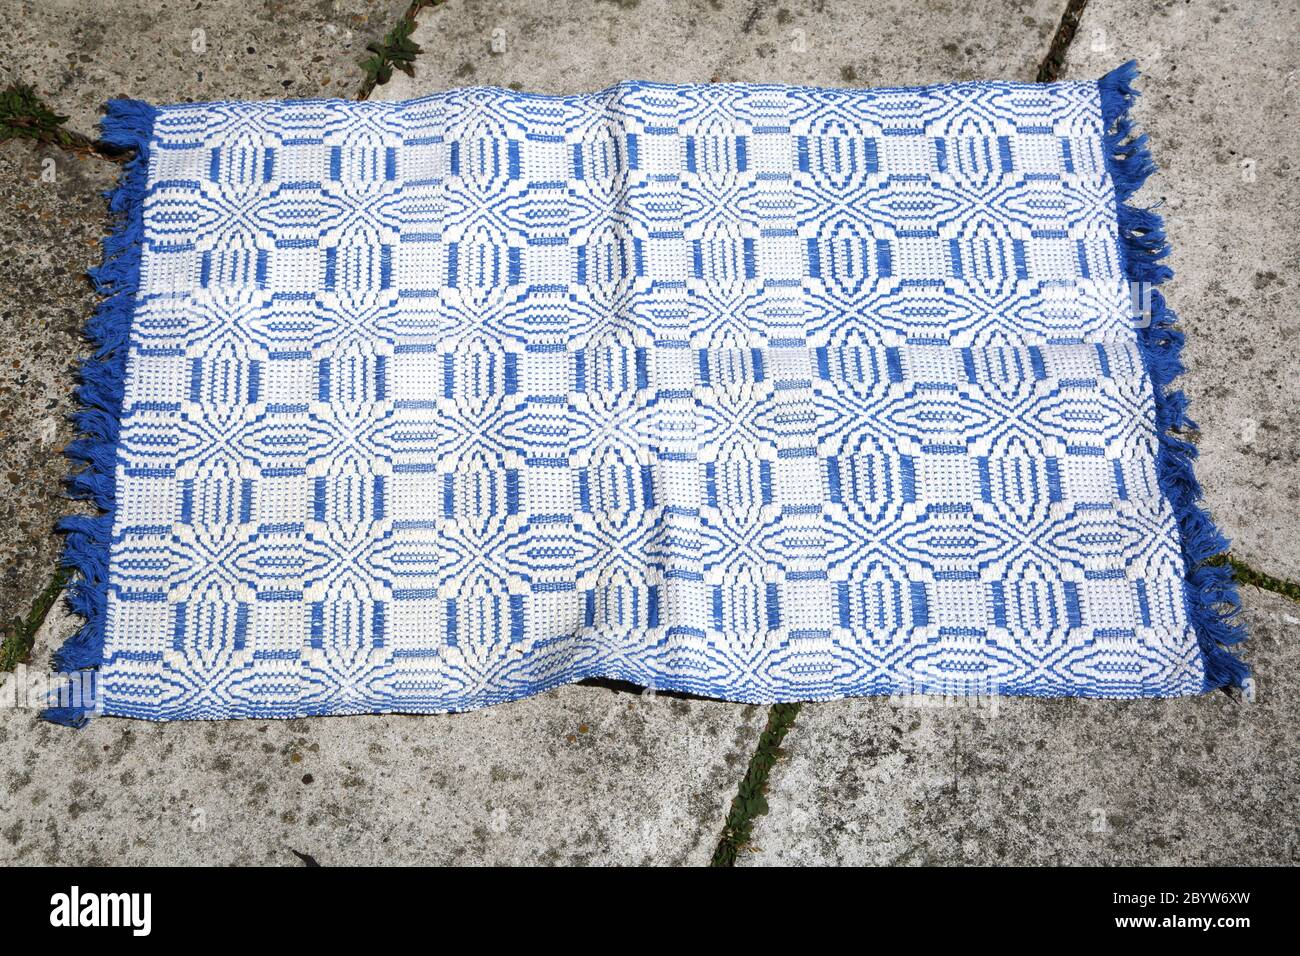 Bathmat High Resolution Stock Photography And Images Alamy